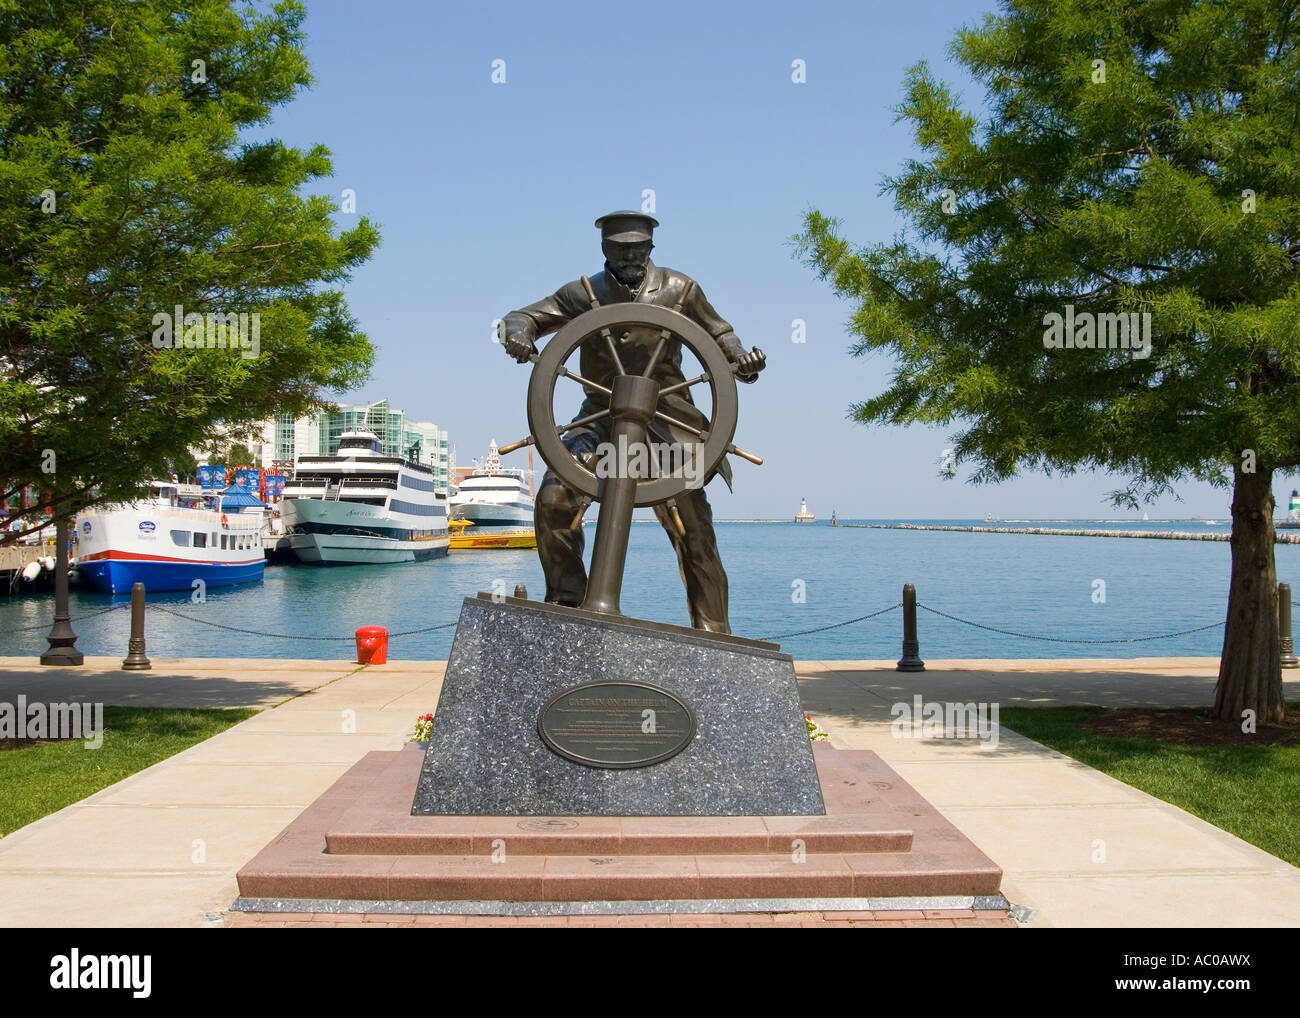 It's time for a statue Maritime-statue-AC0AWX